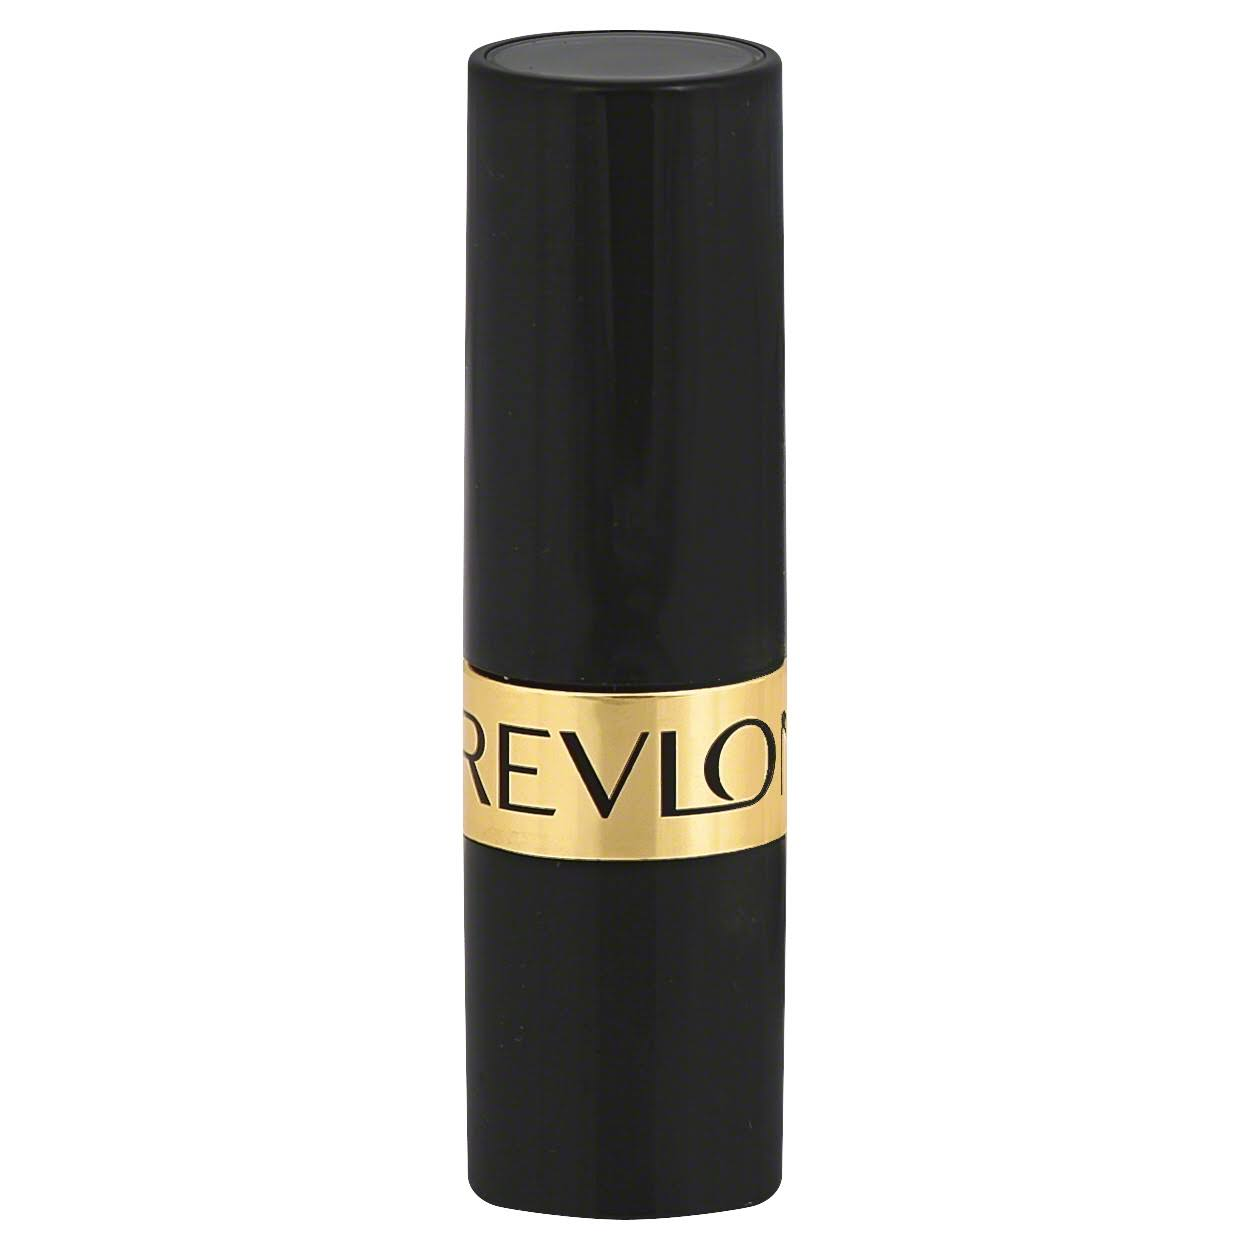 Revlon Super Lustrous Pearl Lipstick - 205 Champagne on Ice, 0.15oz